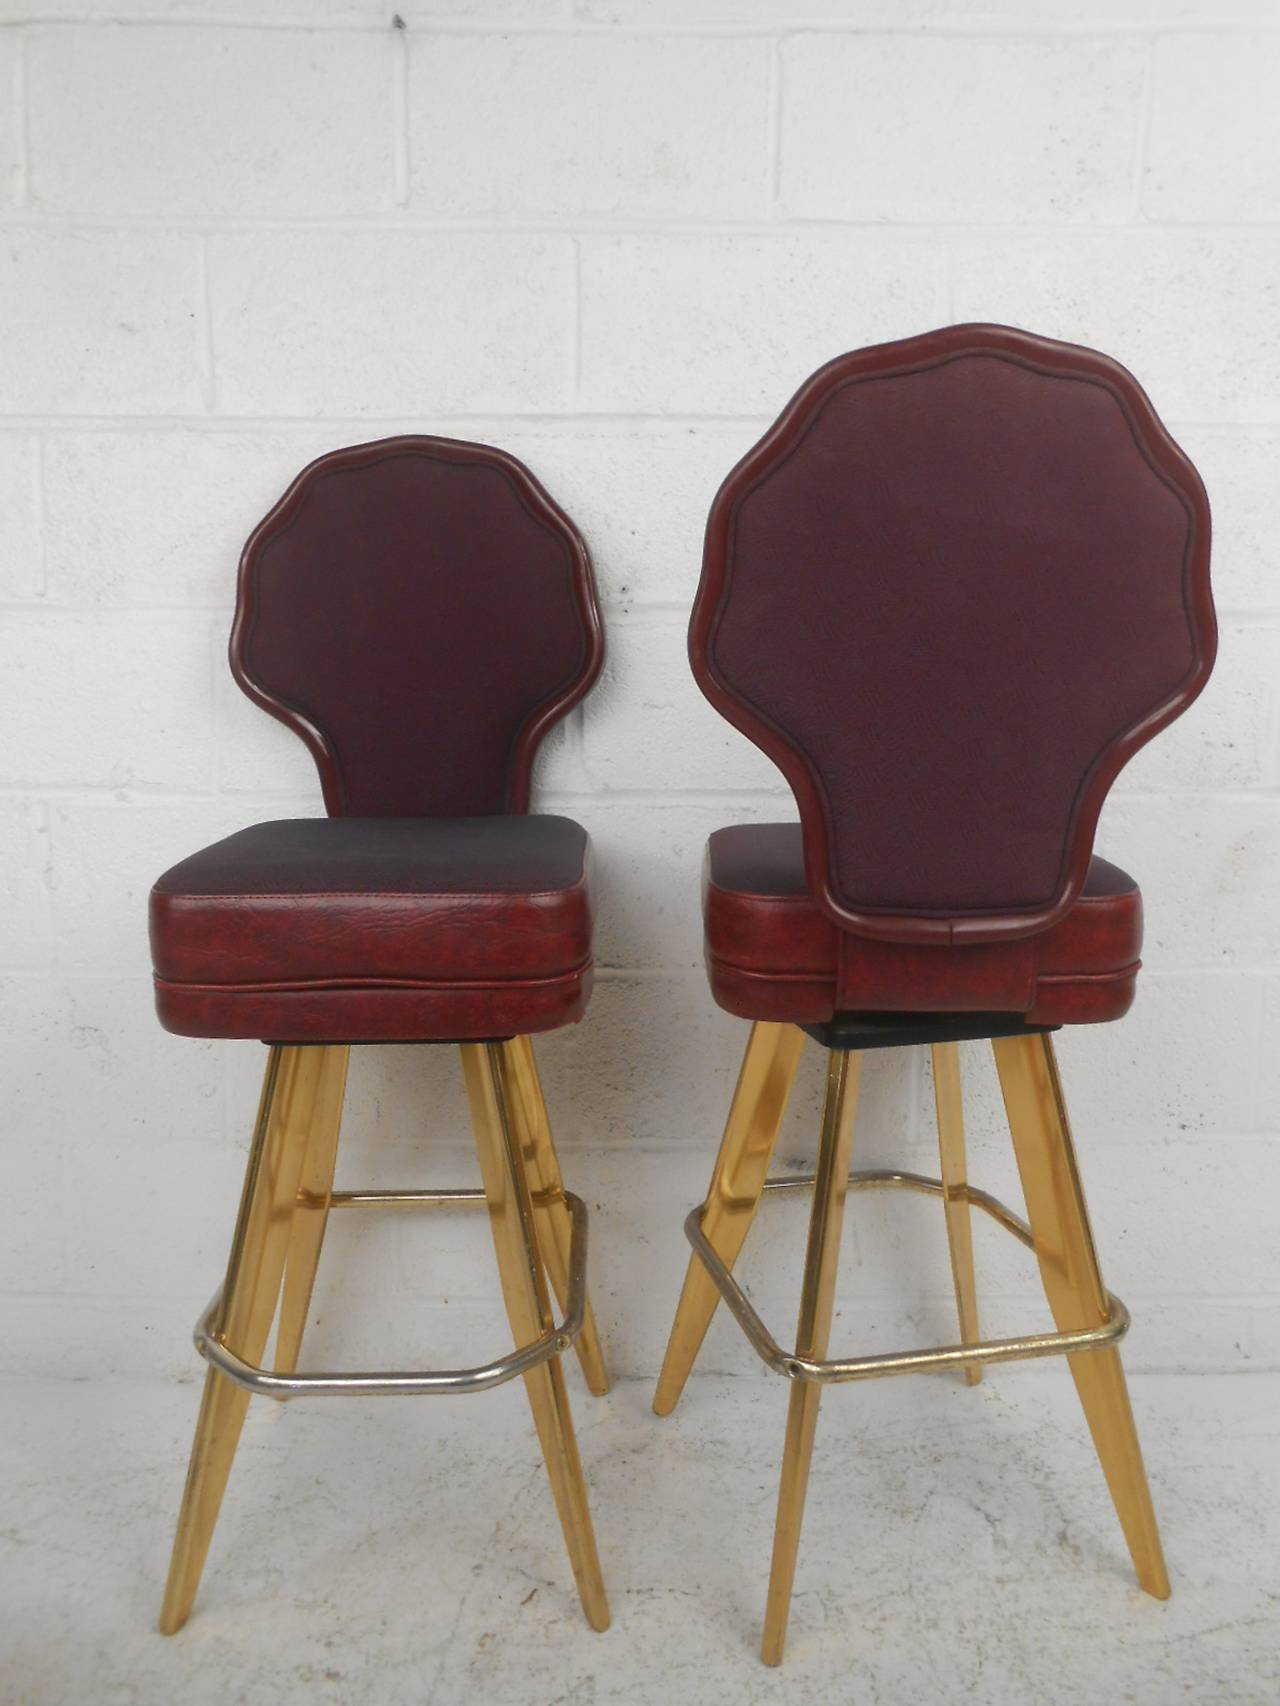 Mid-Century Modern set of swivel stools with a great vintage Las Vegas vibe. Polished brass legs that taper down, vinyl and cloth seating with eggplant color, and sculpted backs.  (Please confirm item location - NY or NJ - with dealer).